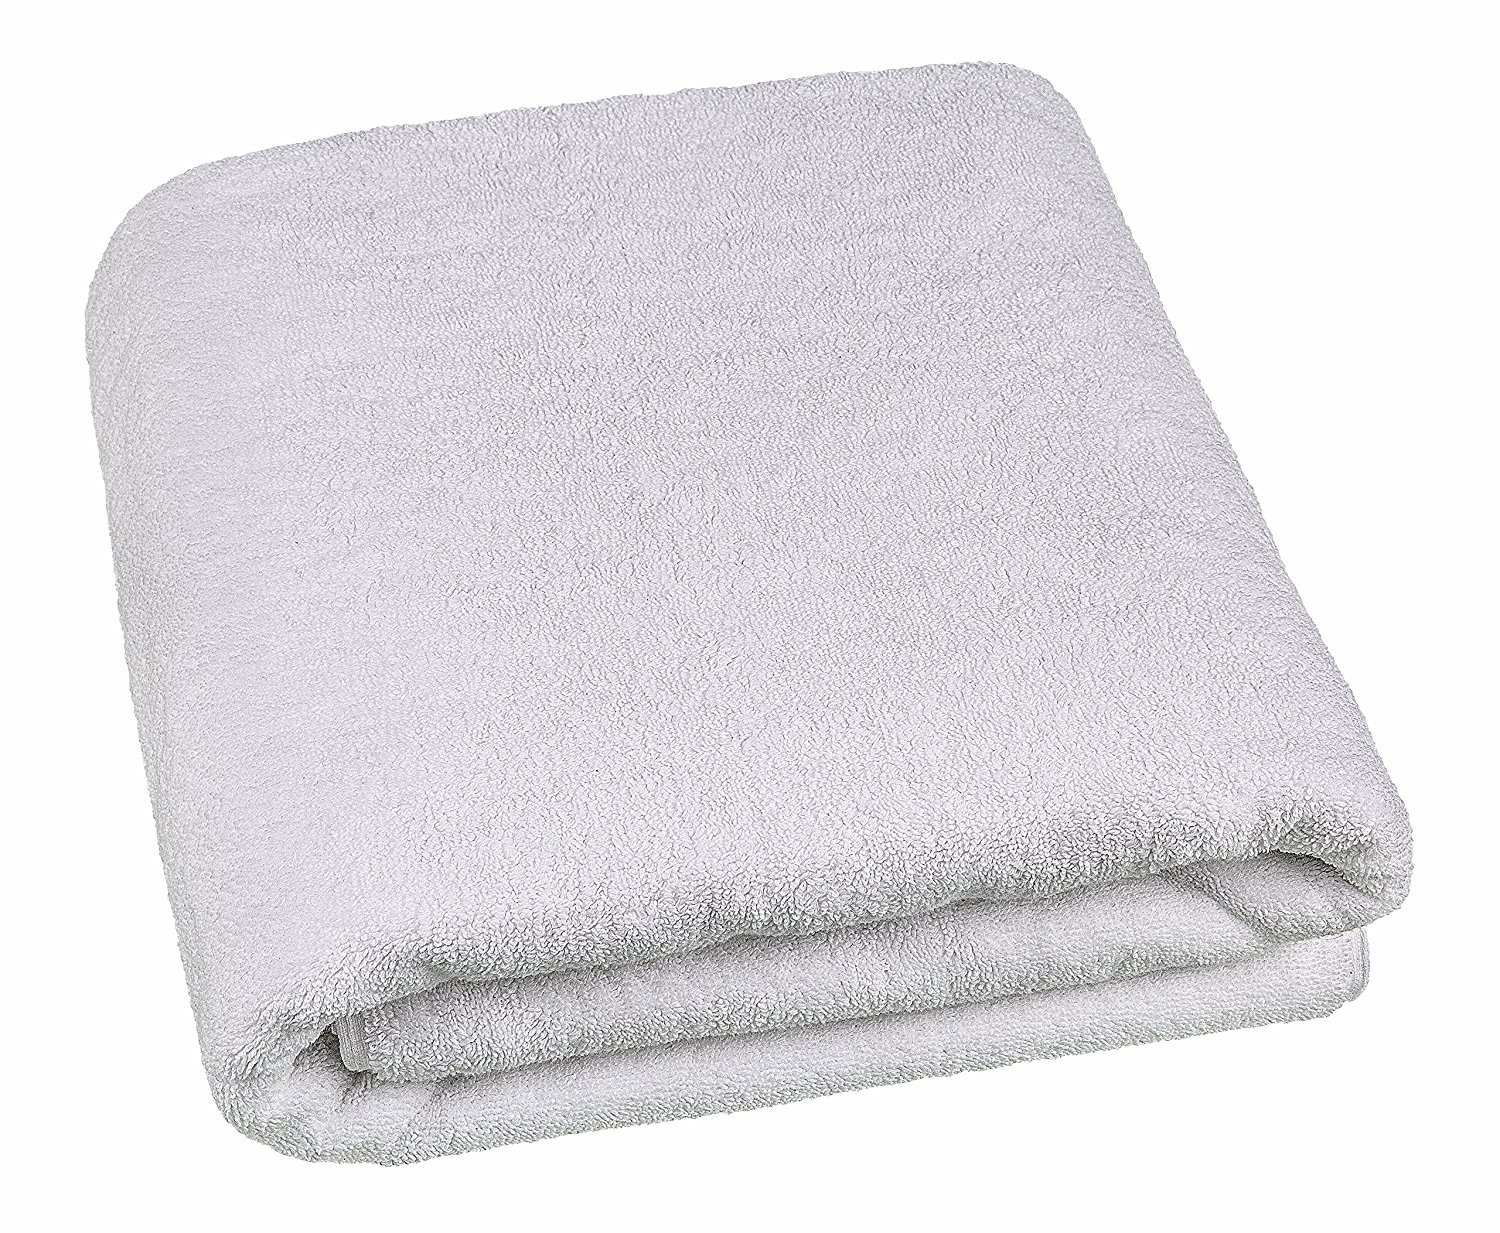 40x80 Inches Jumbo Size, Thick and Large 650 GSM Bath Sheet 100-Percent Genuine Cotton, Luxury Hotel & Spa Quality, Absorbent and Soft Decorative Kitchen and Bathroom Turkish Towels, Snow White